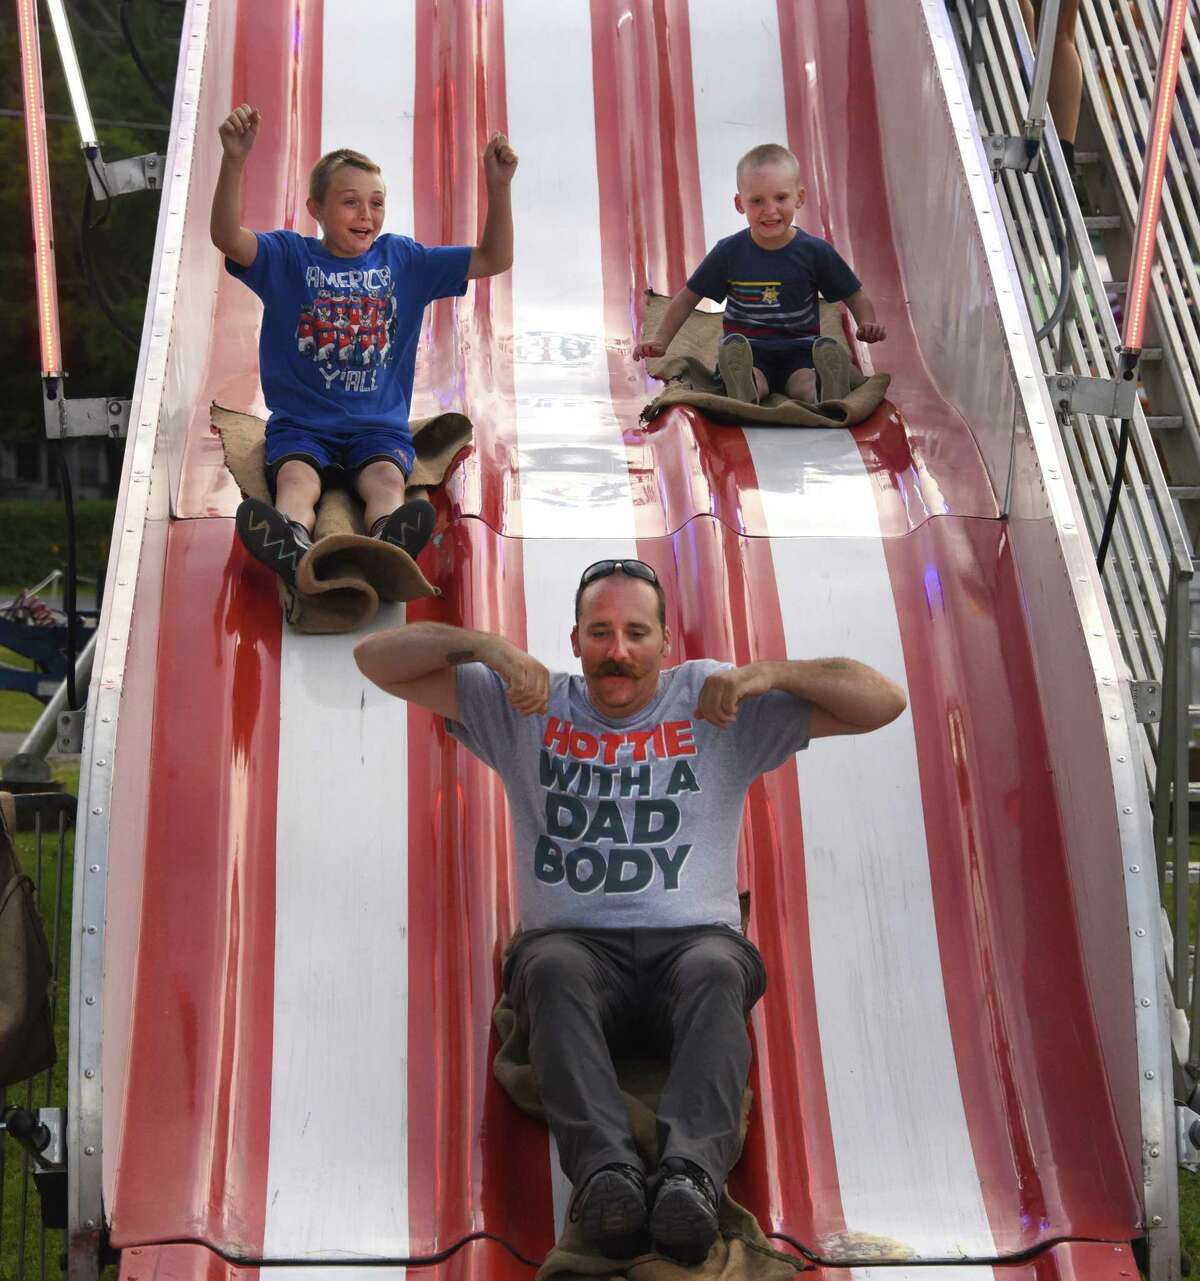 Sanford Perkins of Hudson Falls, center, goes down a slide with his son Noah, 5, on right, and Timothy Hall, 11, of Rotterdam, left, during the 178th Saratoga County Fair on Tuesday, July 23, 2019 in Ballston Spa, N.Y. (Lori Van Buren/Times Union)